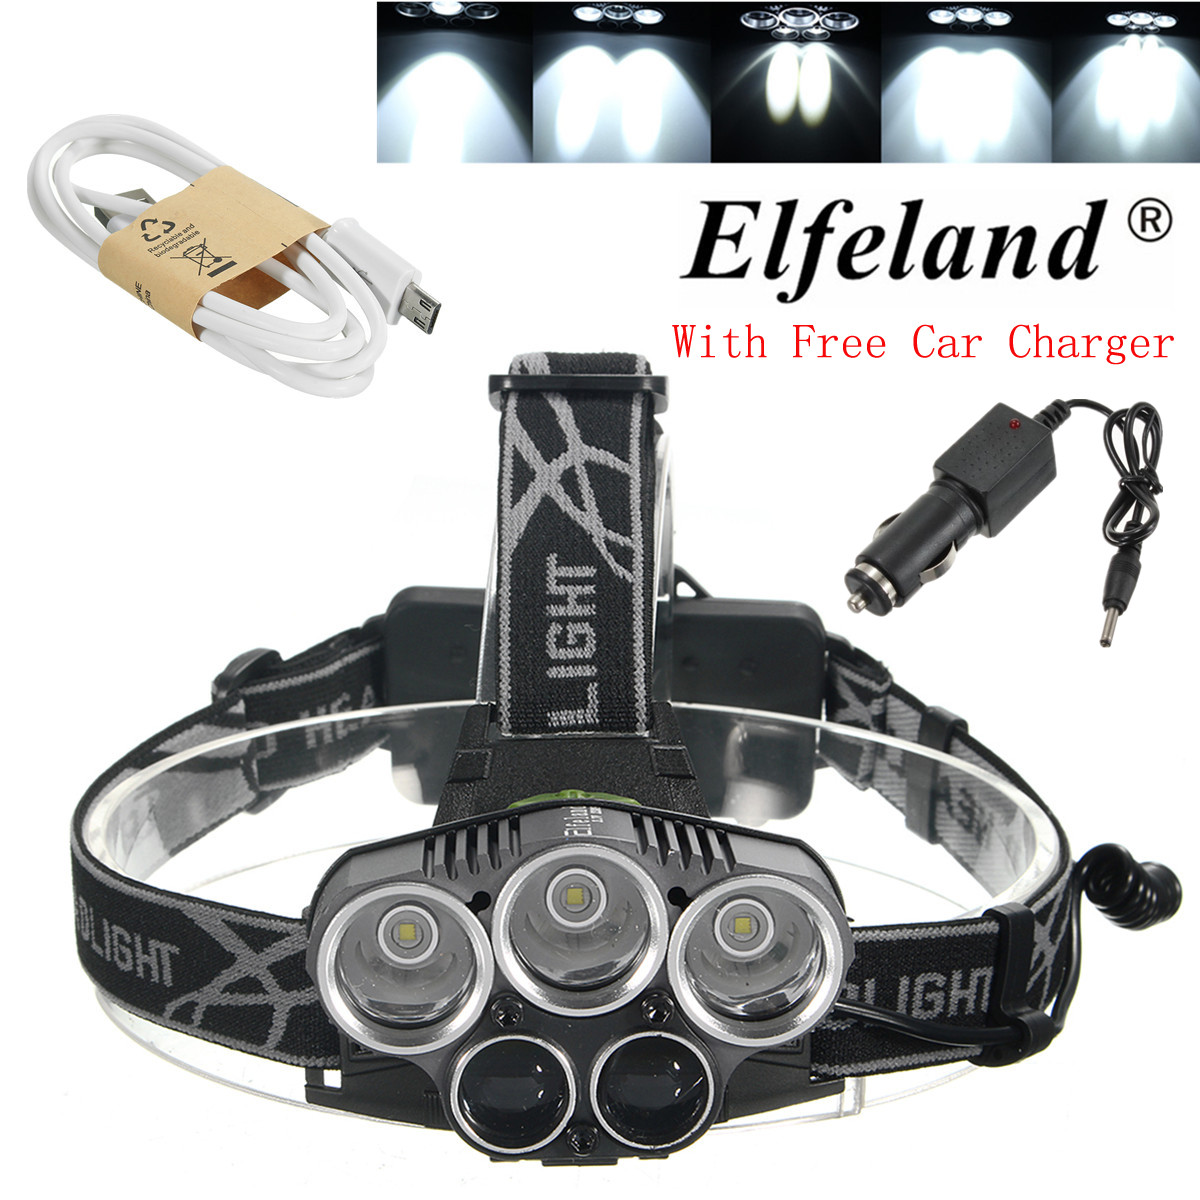 Elfeland 6000Lumens 5X T6 LED USB Rechargeable Headlamp Headlight Head Light Torch Waterproof + USB Cable + Car Charger For Hiking Camping